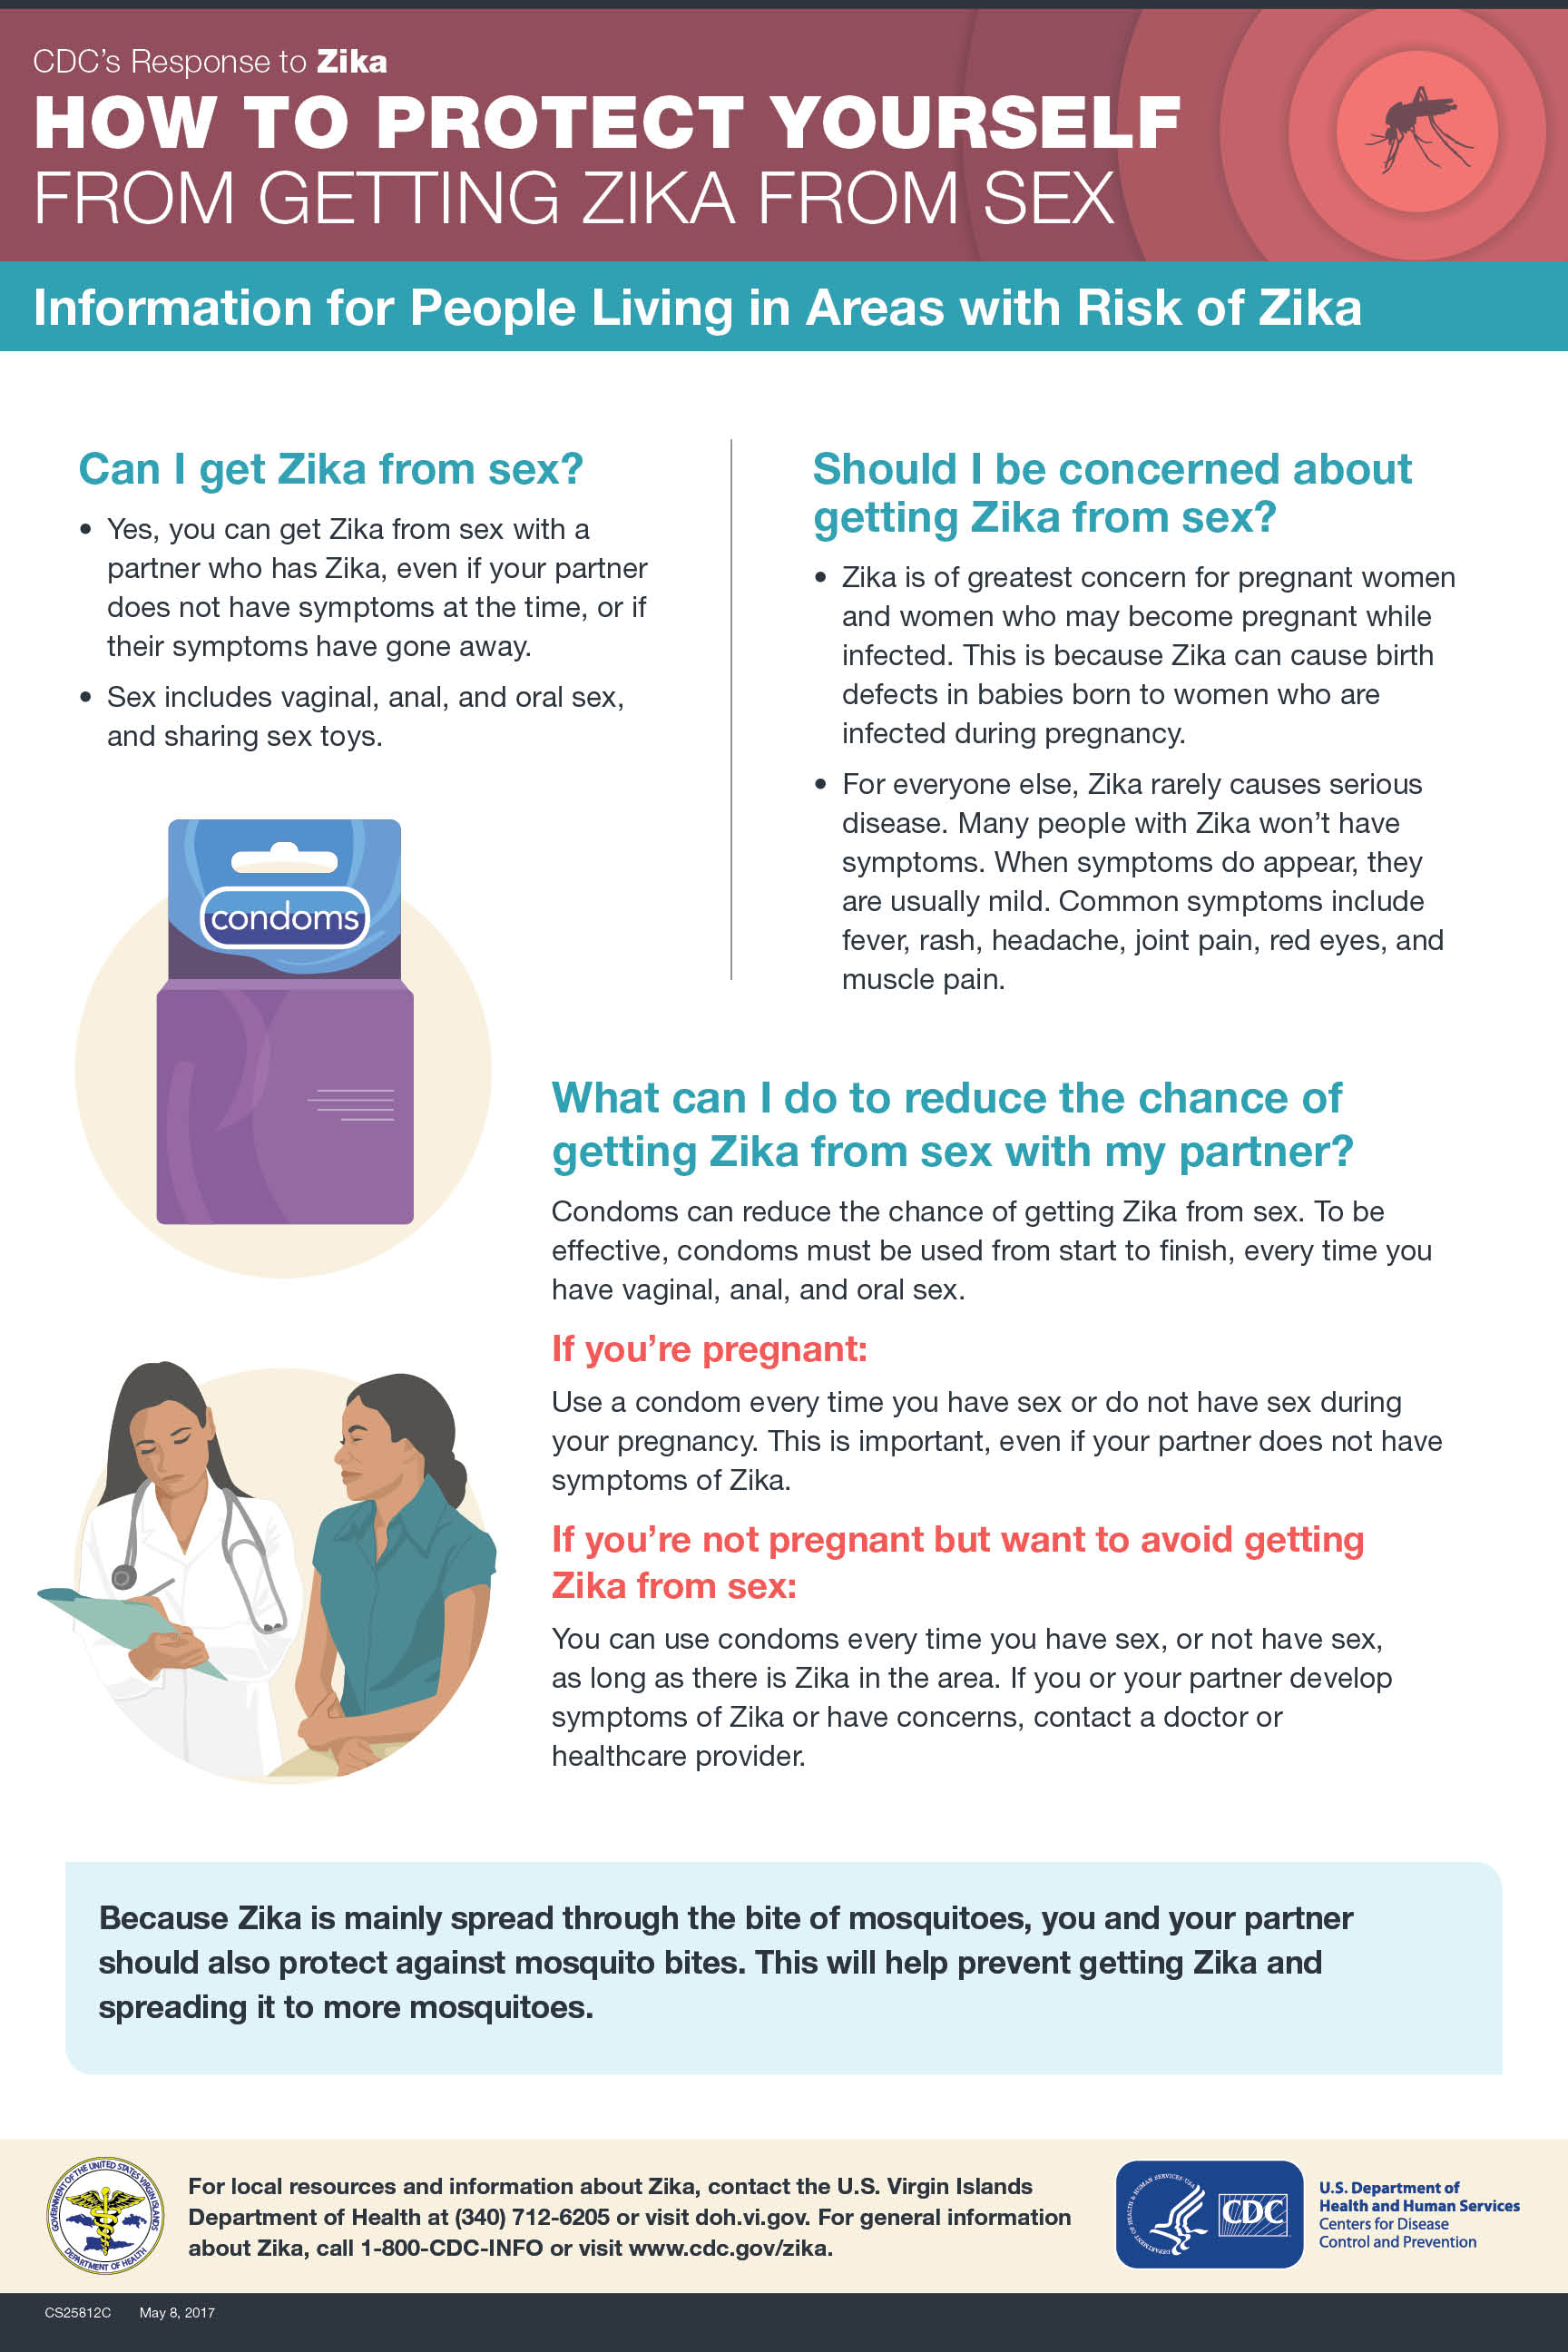 washington county health department, zika, disease, sexually transmitted diseases, community, mosquitoes